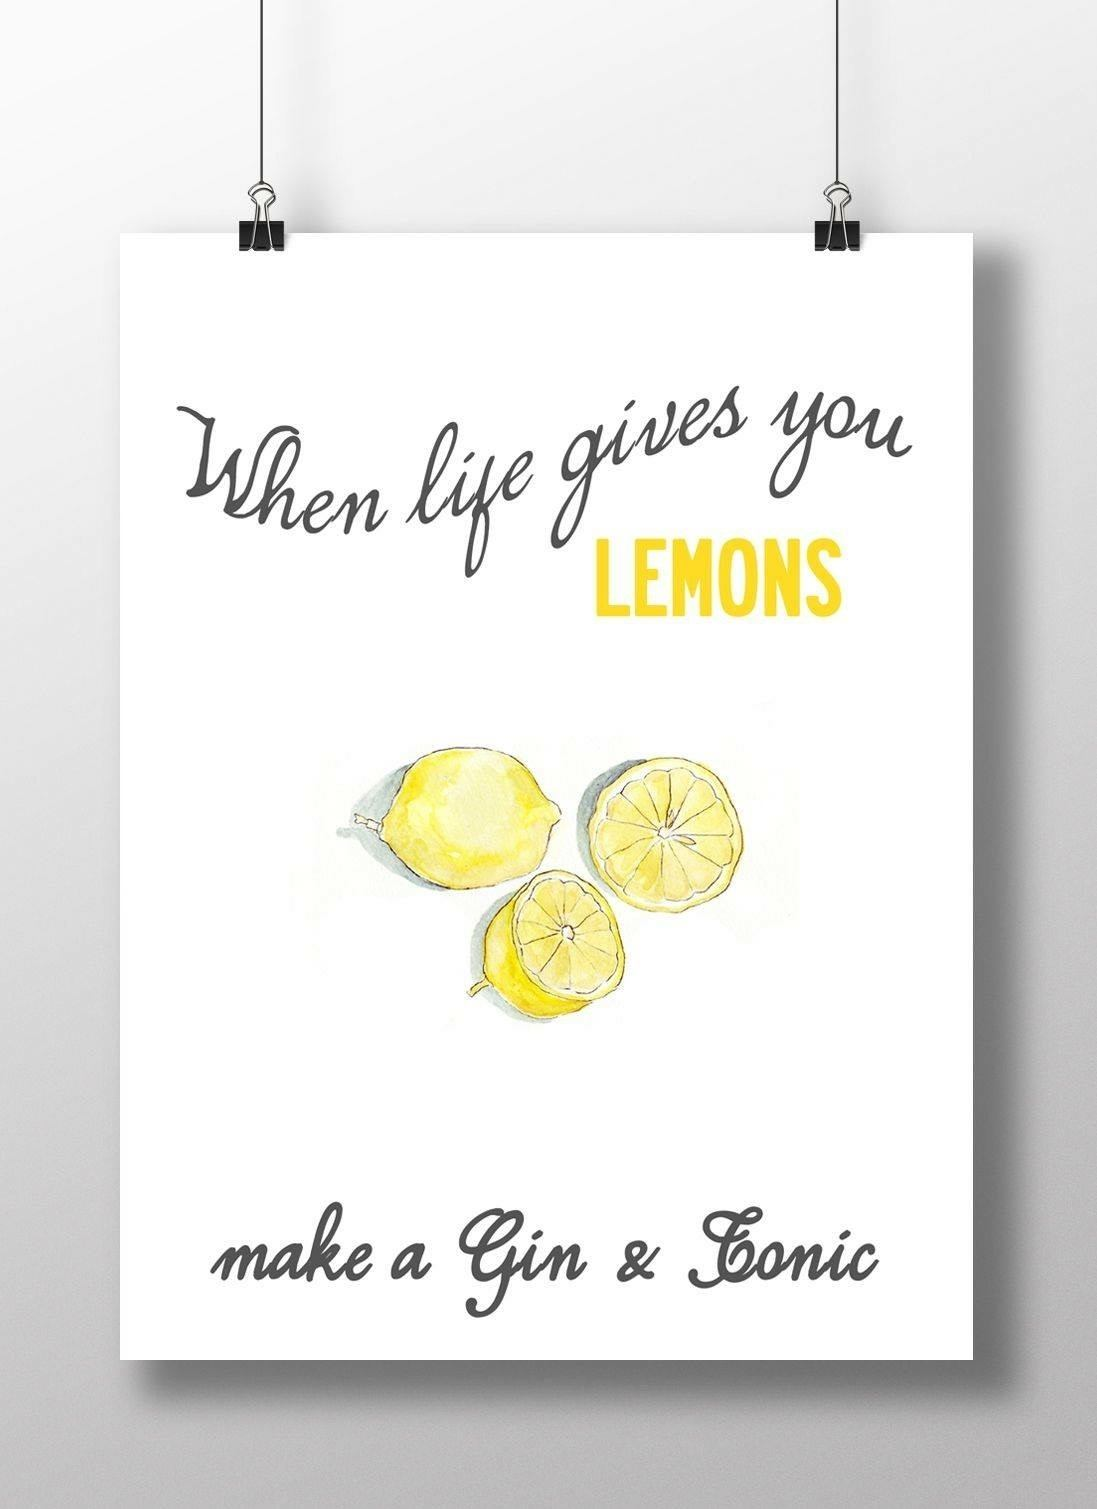 When Life Gives You Lemons Positieve Vibe Quote Kop Op